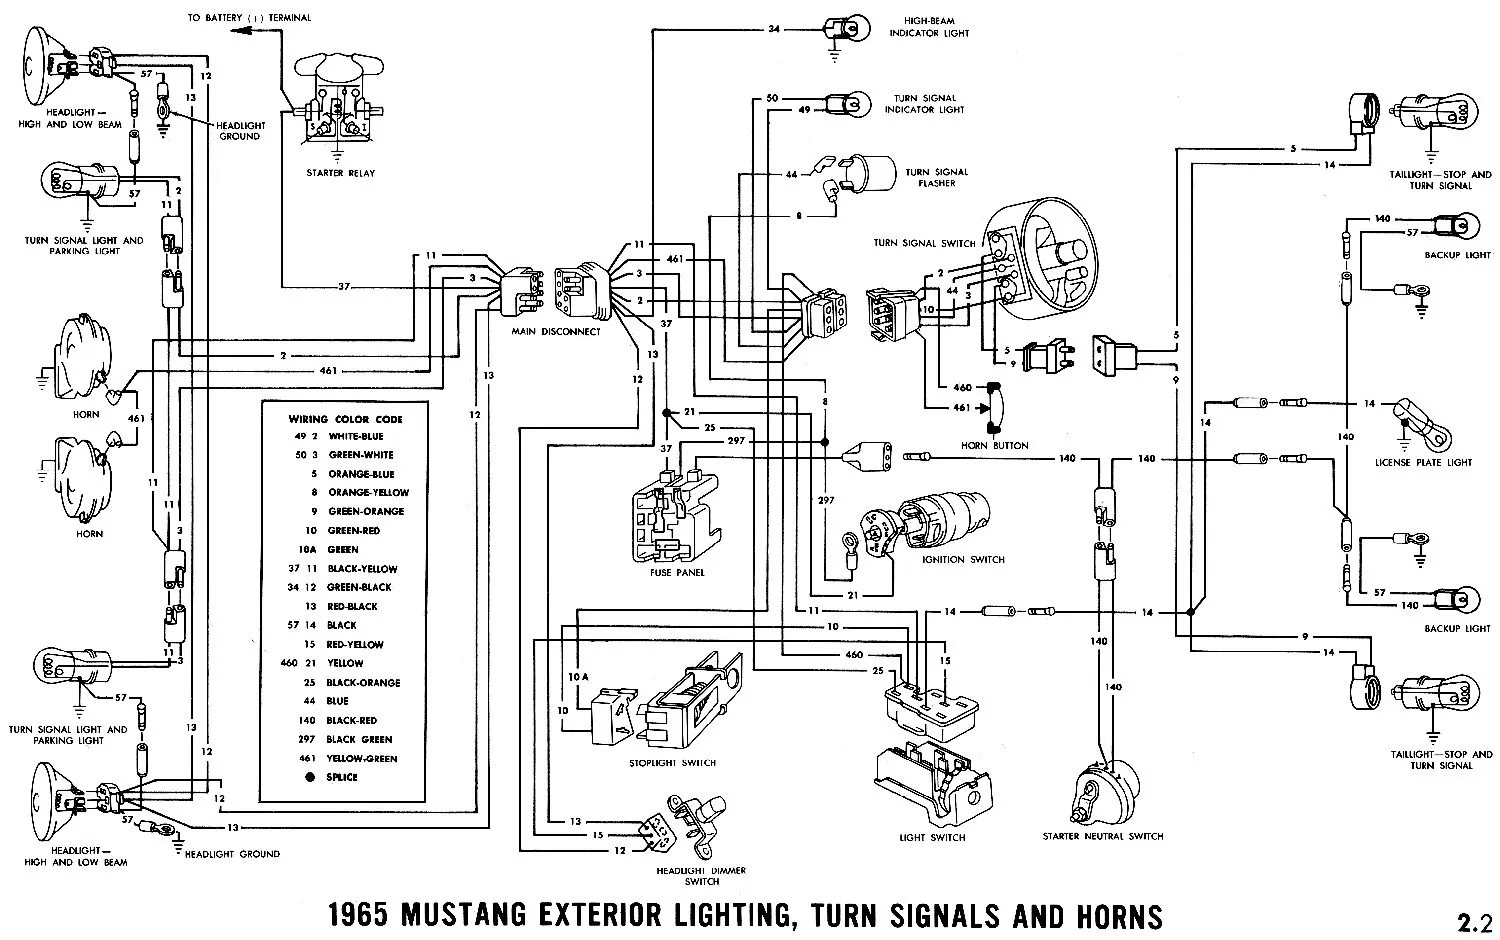 hight resolution of 2001 mustang wiring harness diagram wiring library1966 mustang wiring diagram pdf simple wiring diagram 1988 ford